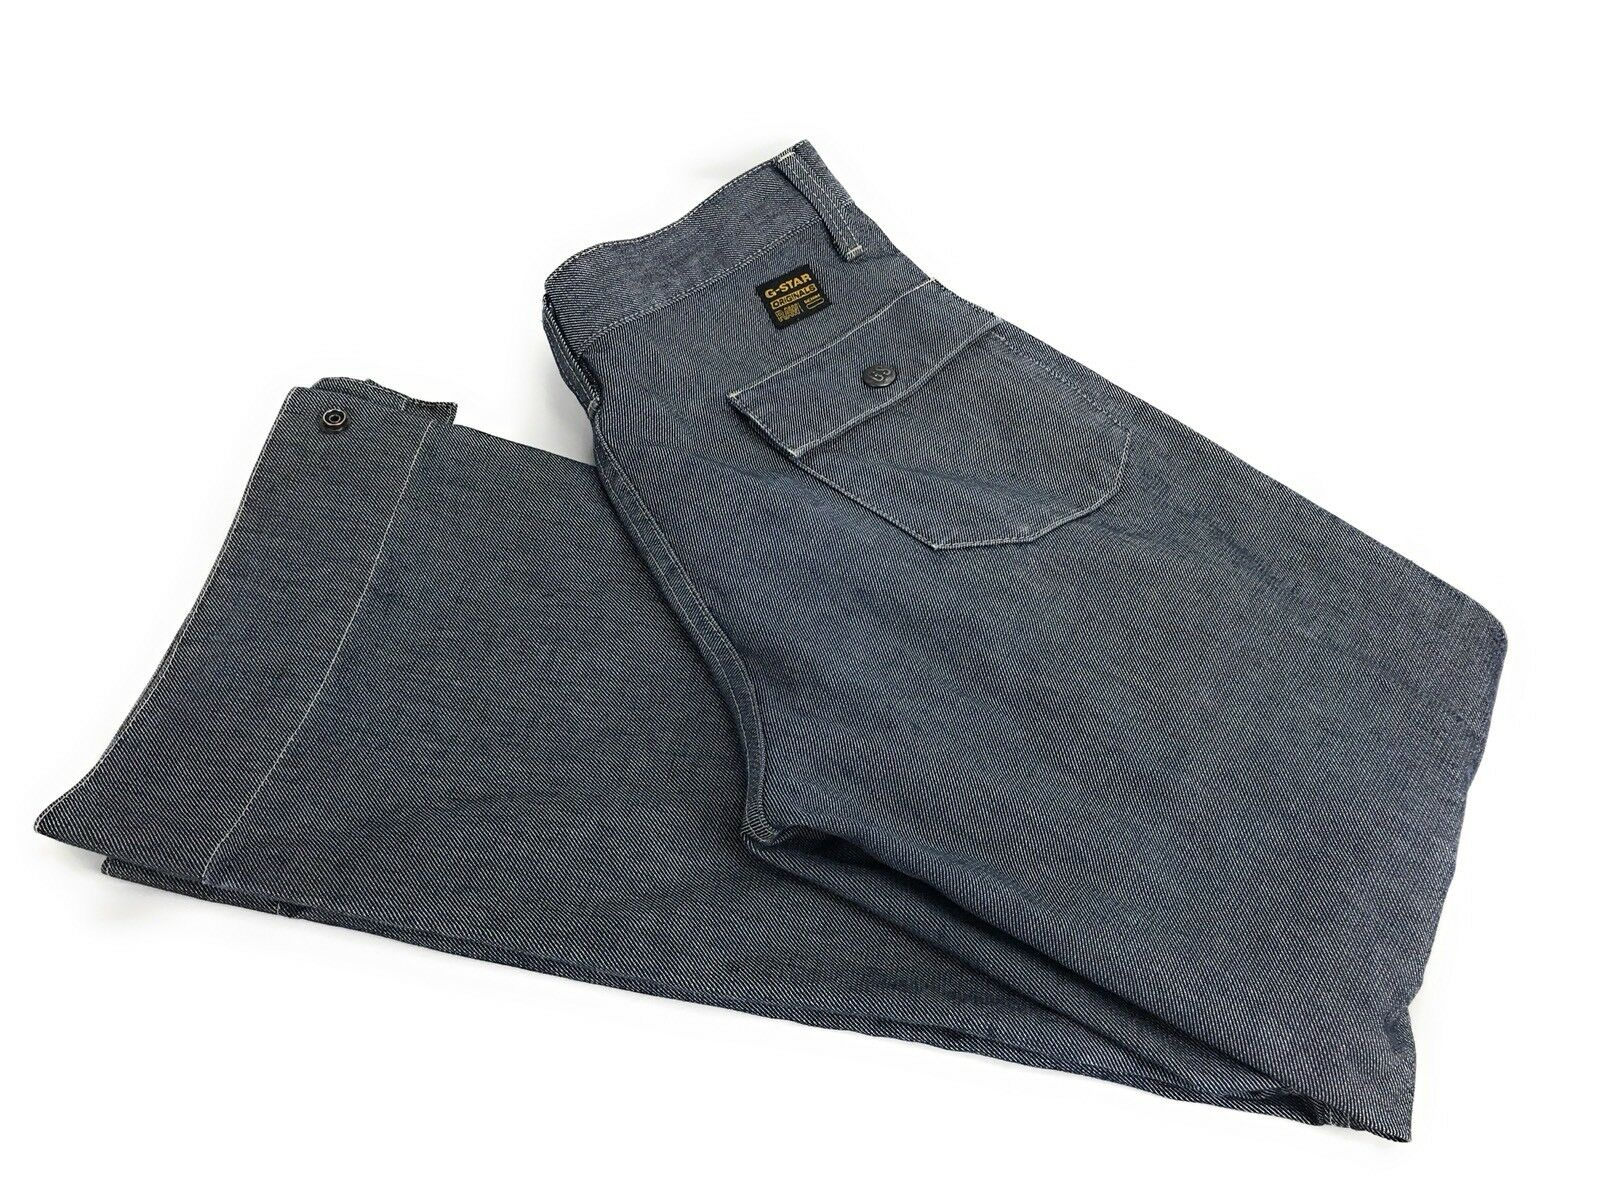 G Star Denim Raw Originals Jeans Shortcut Surman 28 x 32 Medium bluee